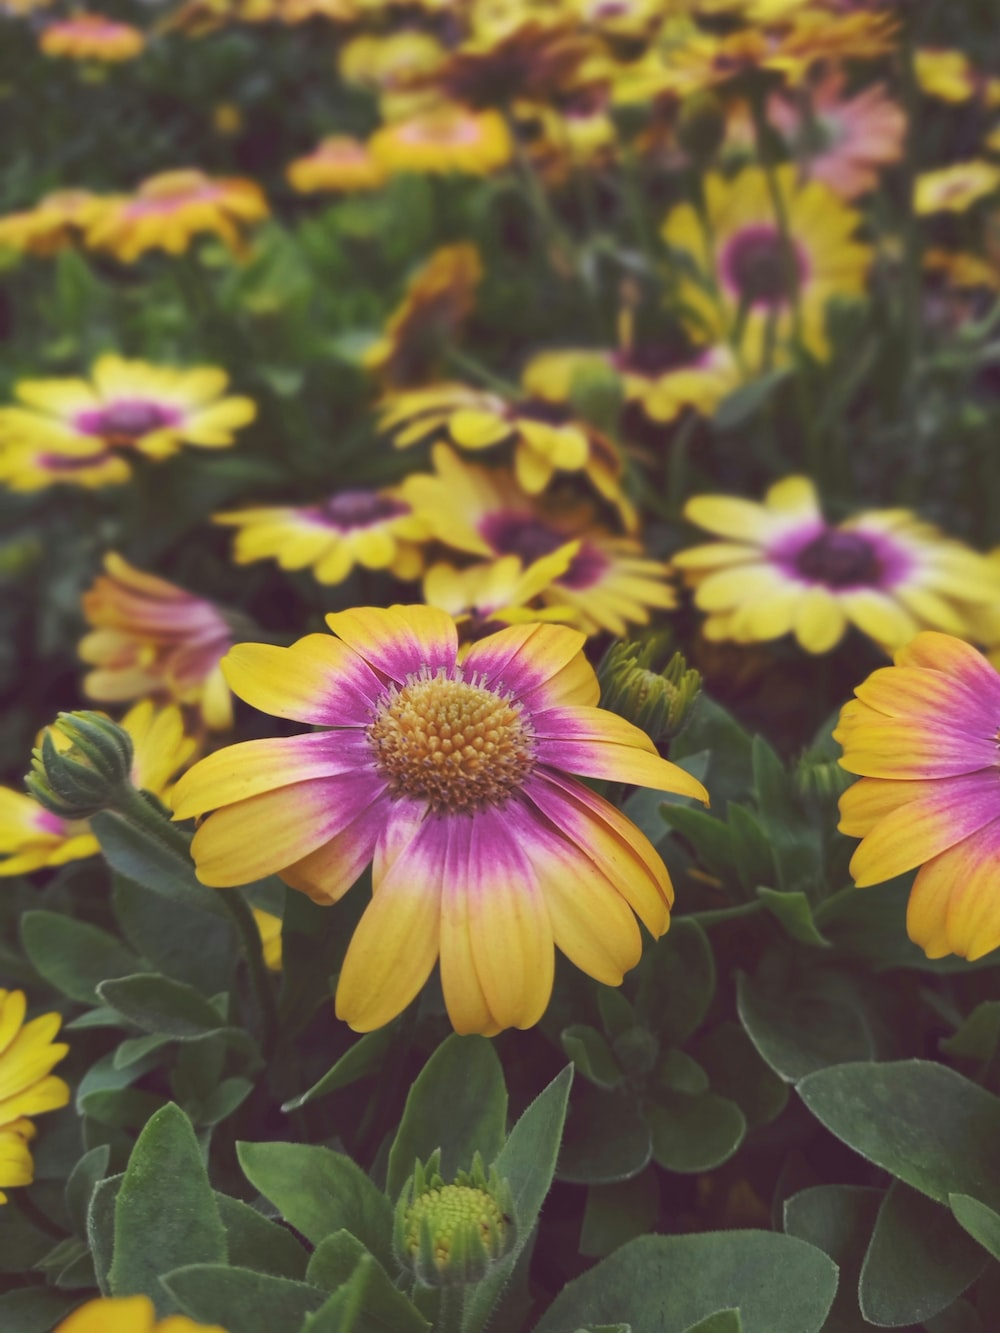 yellow and purple-petaled flower